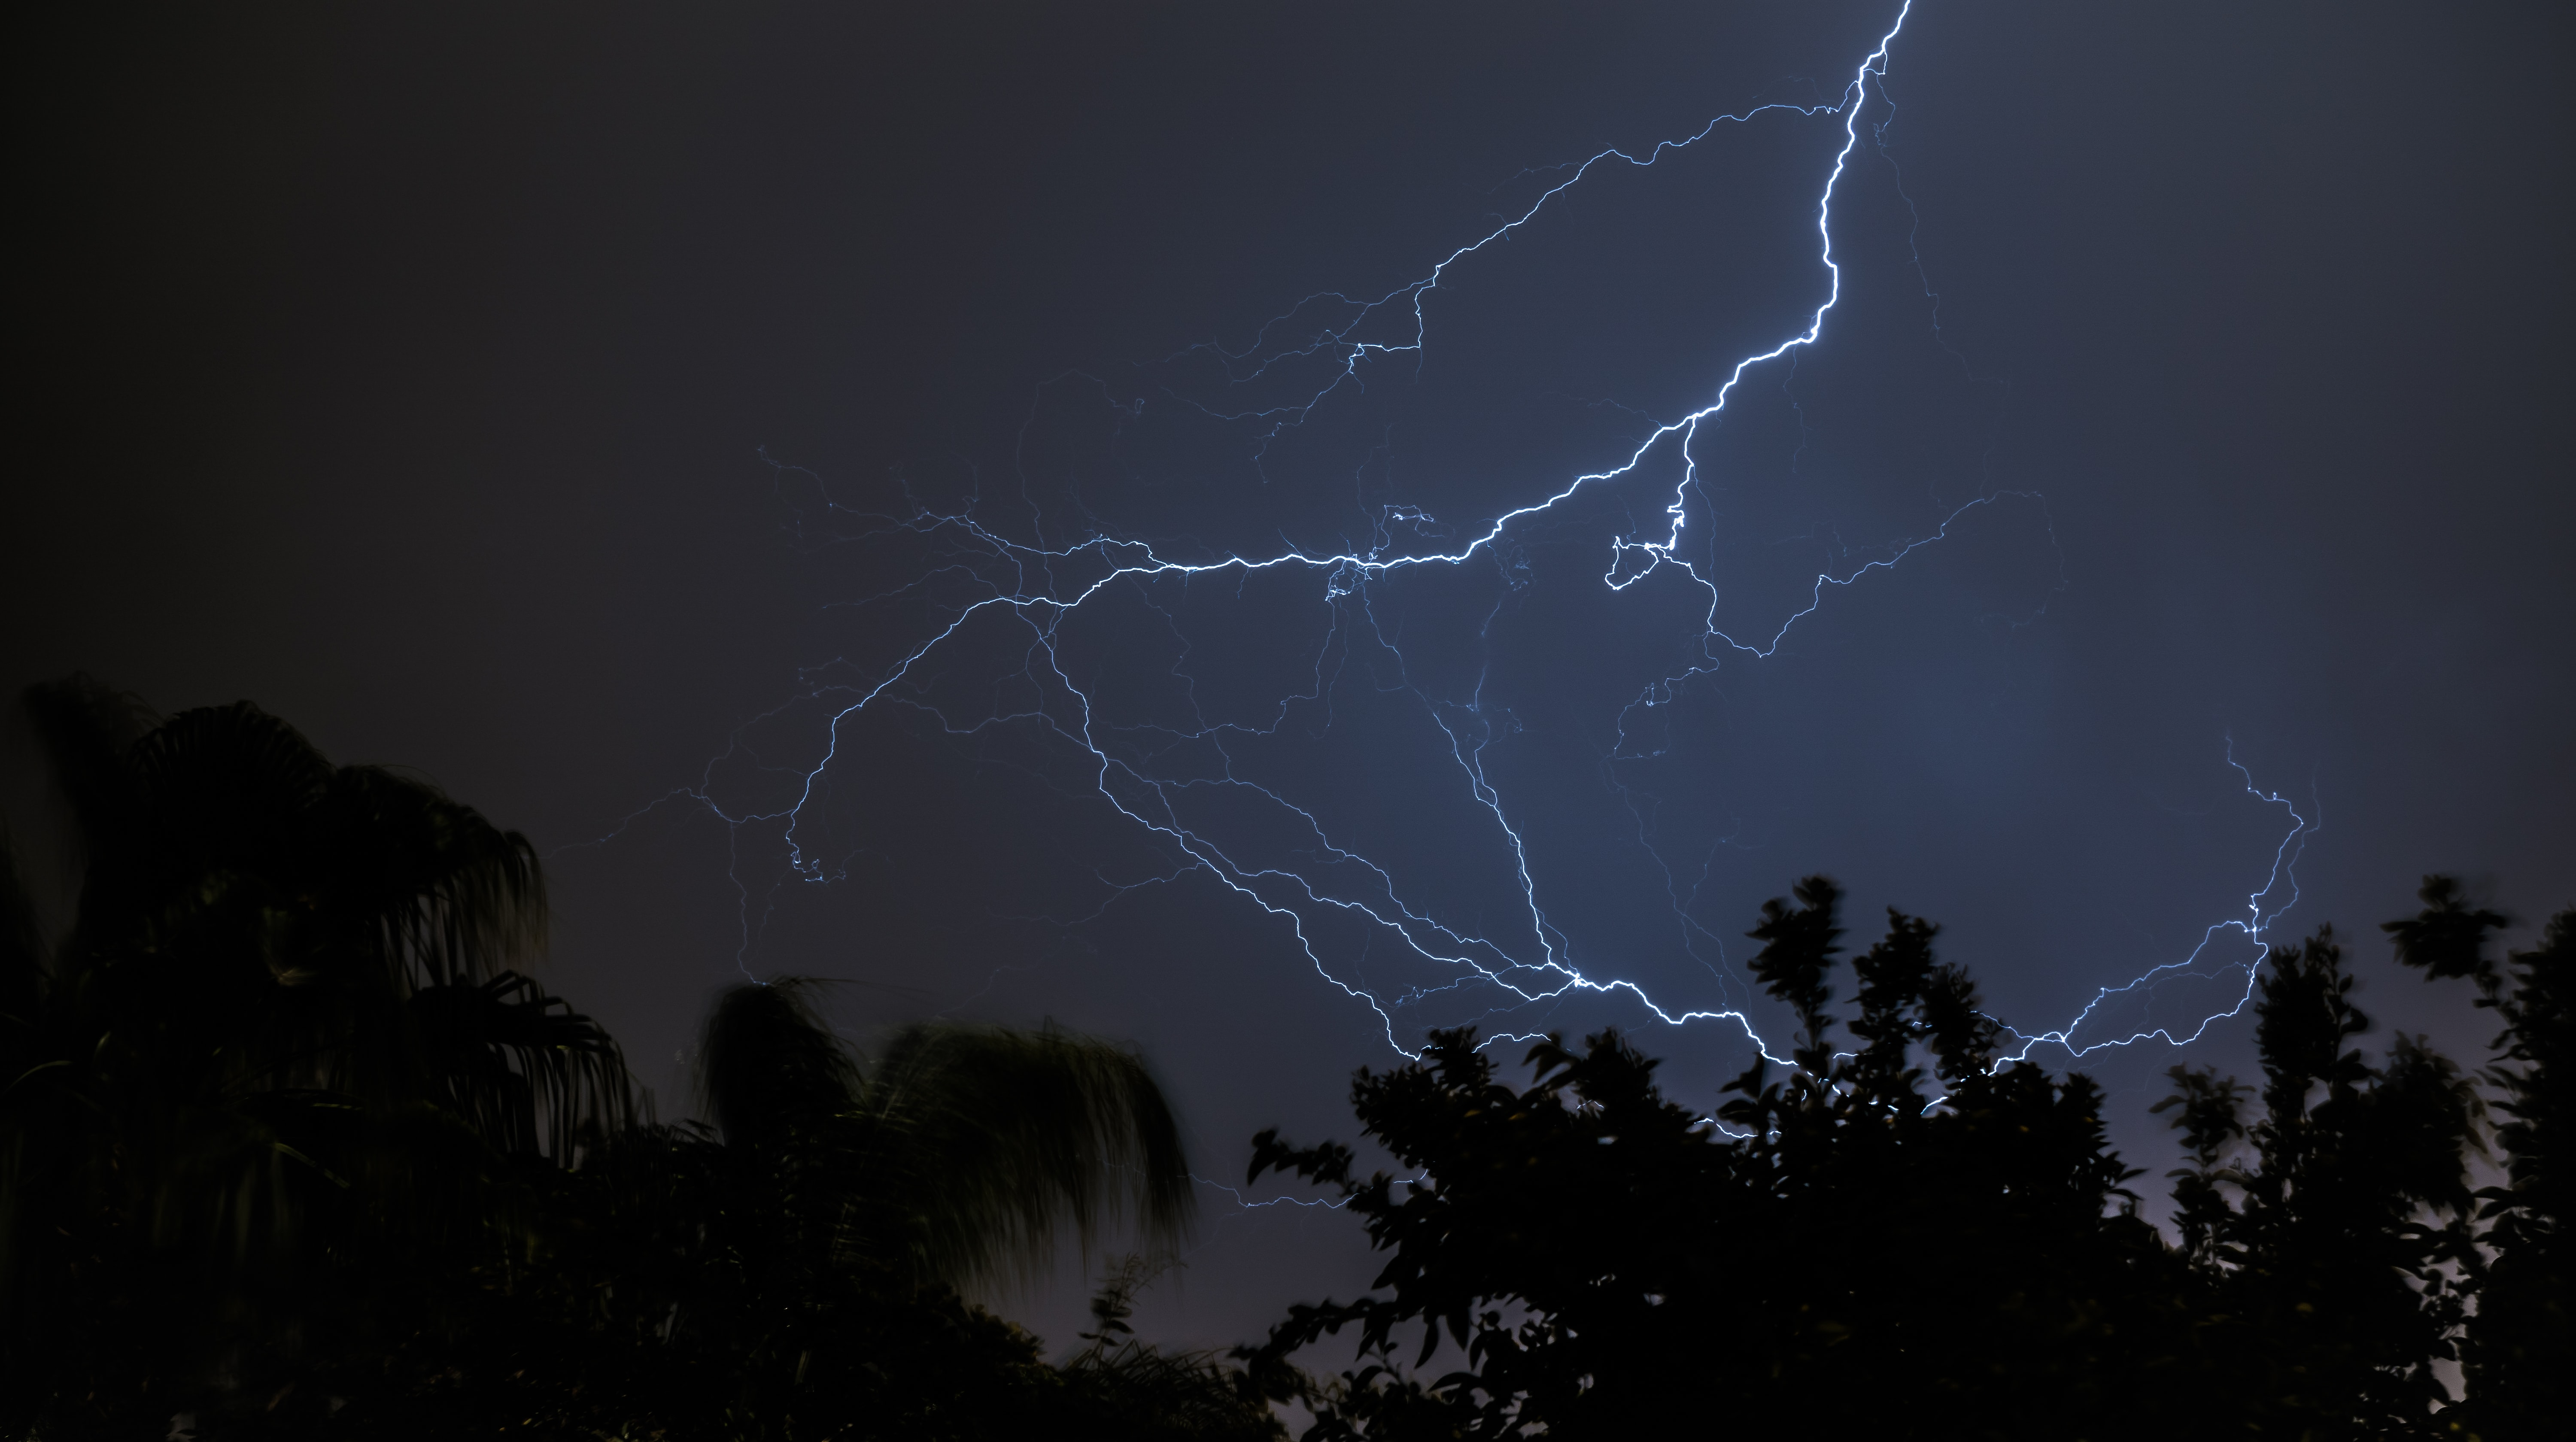 Forked lightning on a dark sky over tree silhouettes